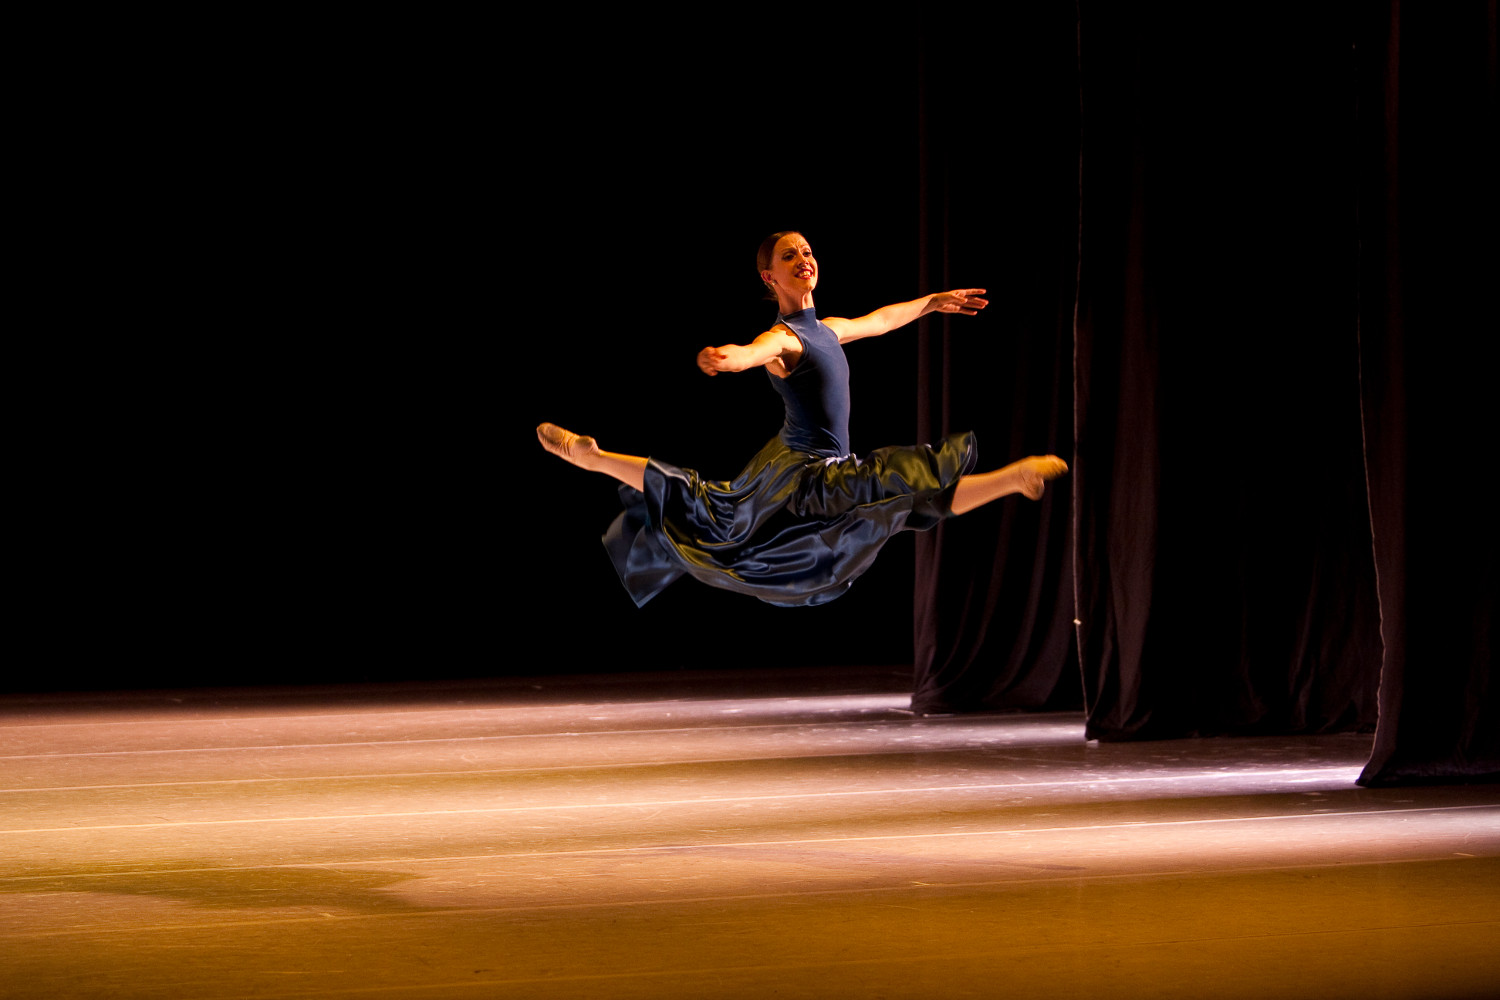 dancer-leap-stage.jpg